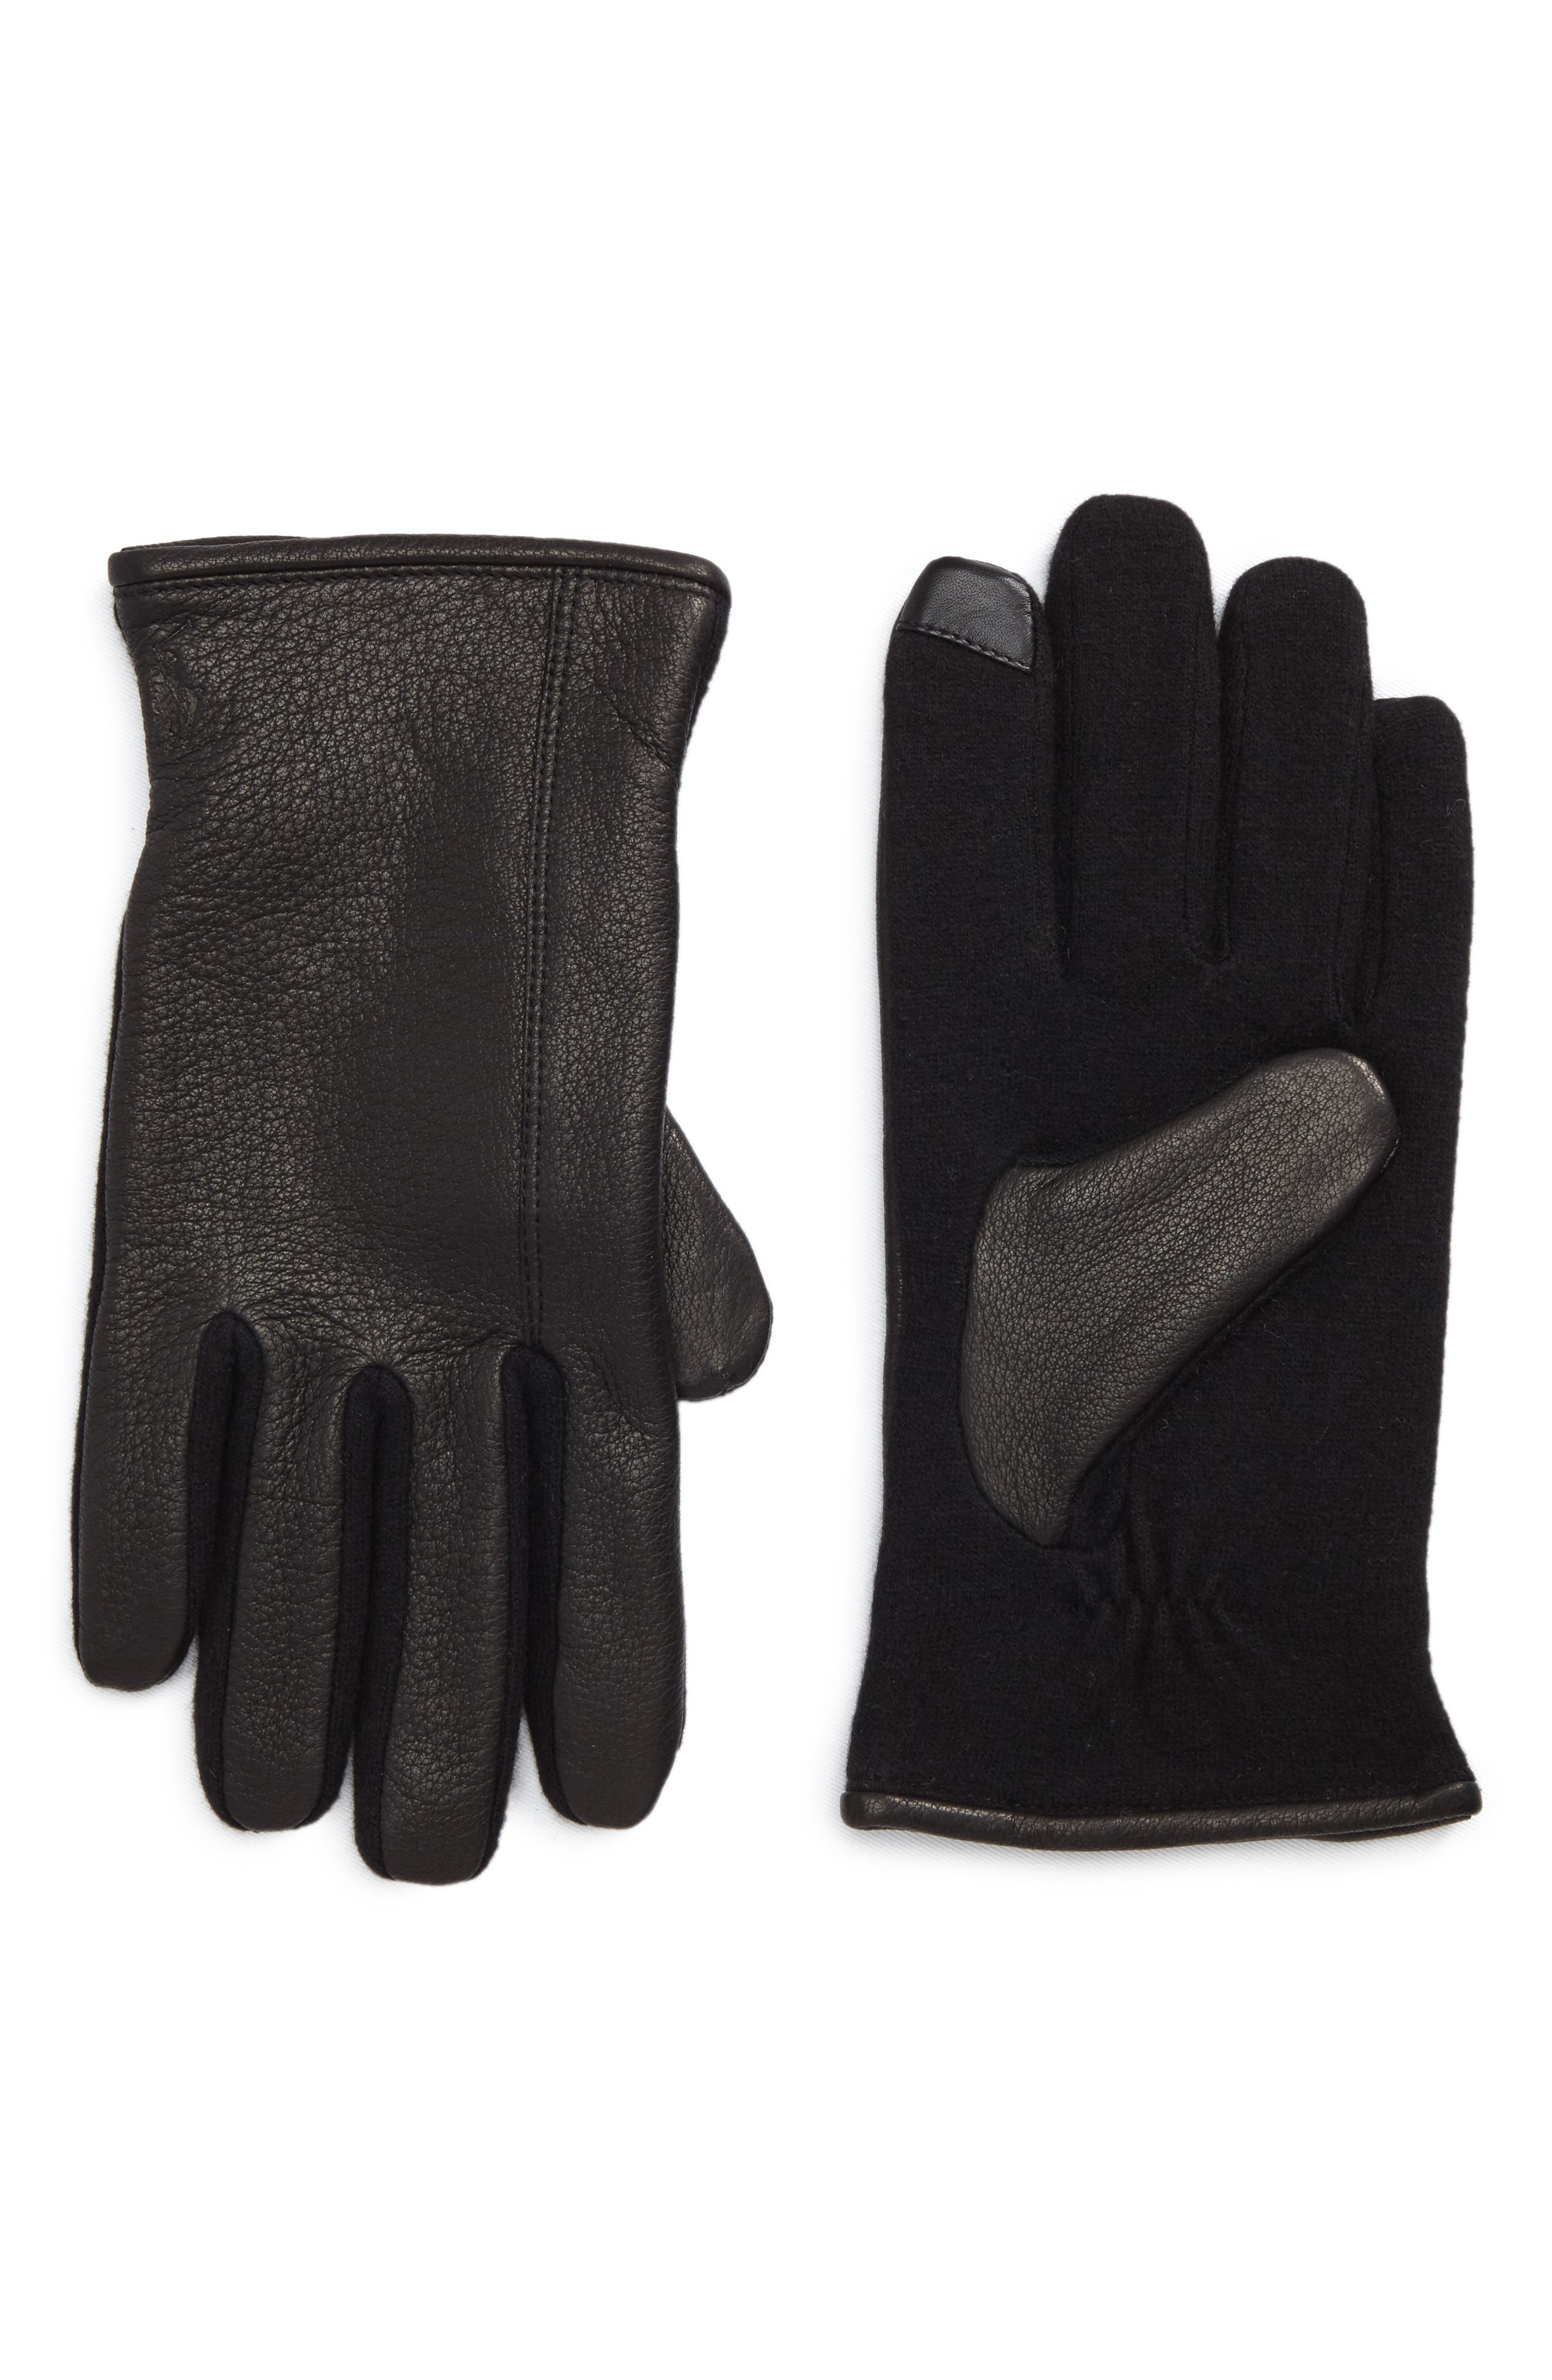 Leather driving gloves vancouver - Leather Driving Gloves Vancouver 36